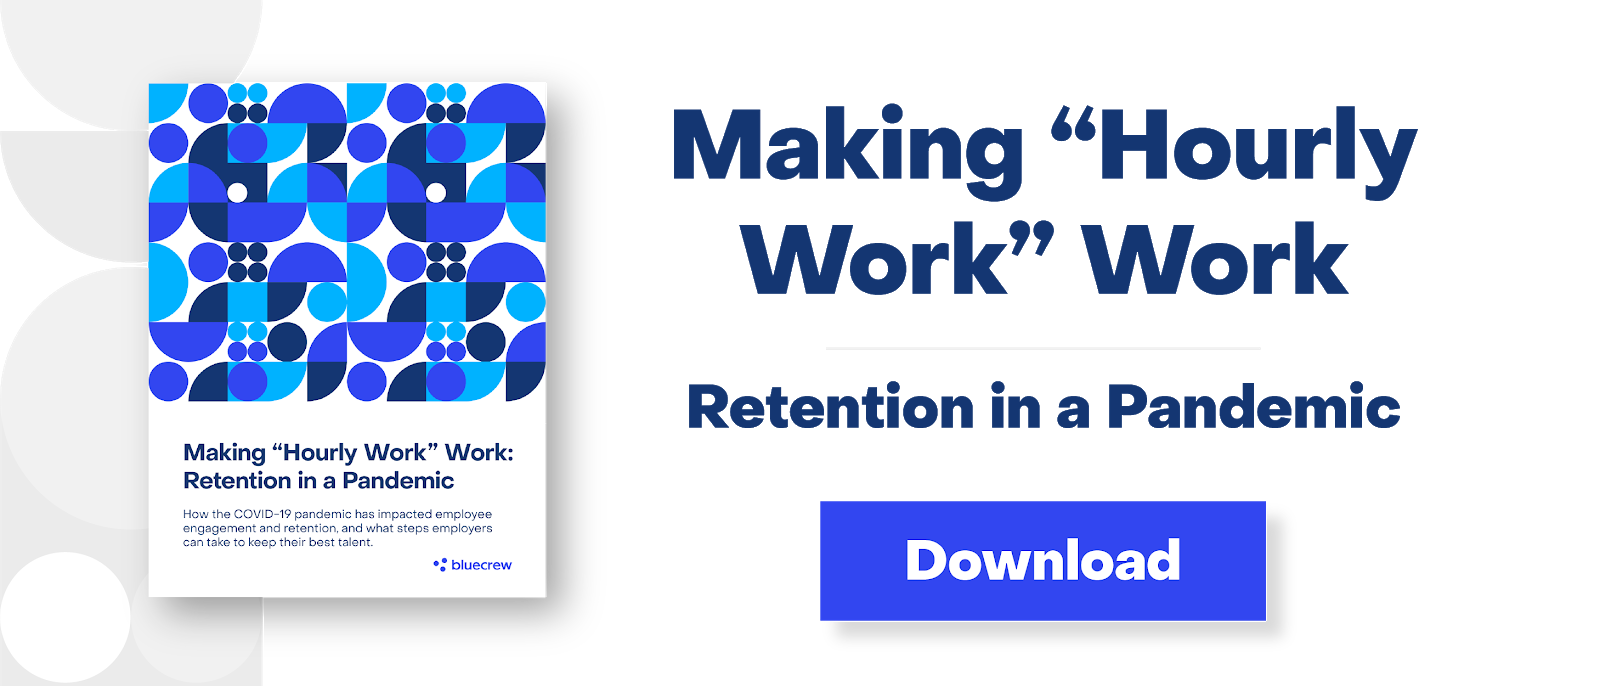 Download the piece to fully understand how retention has changed during the COVID-19 pandemic.